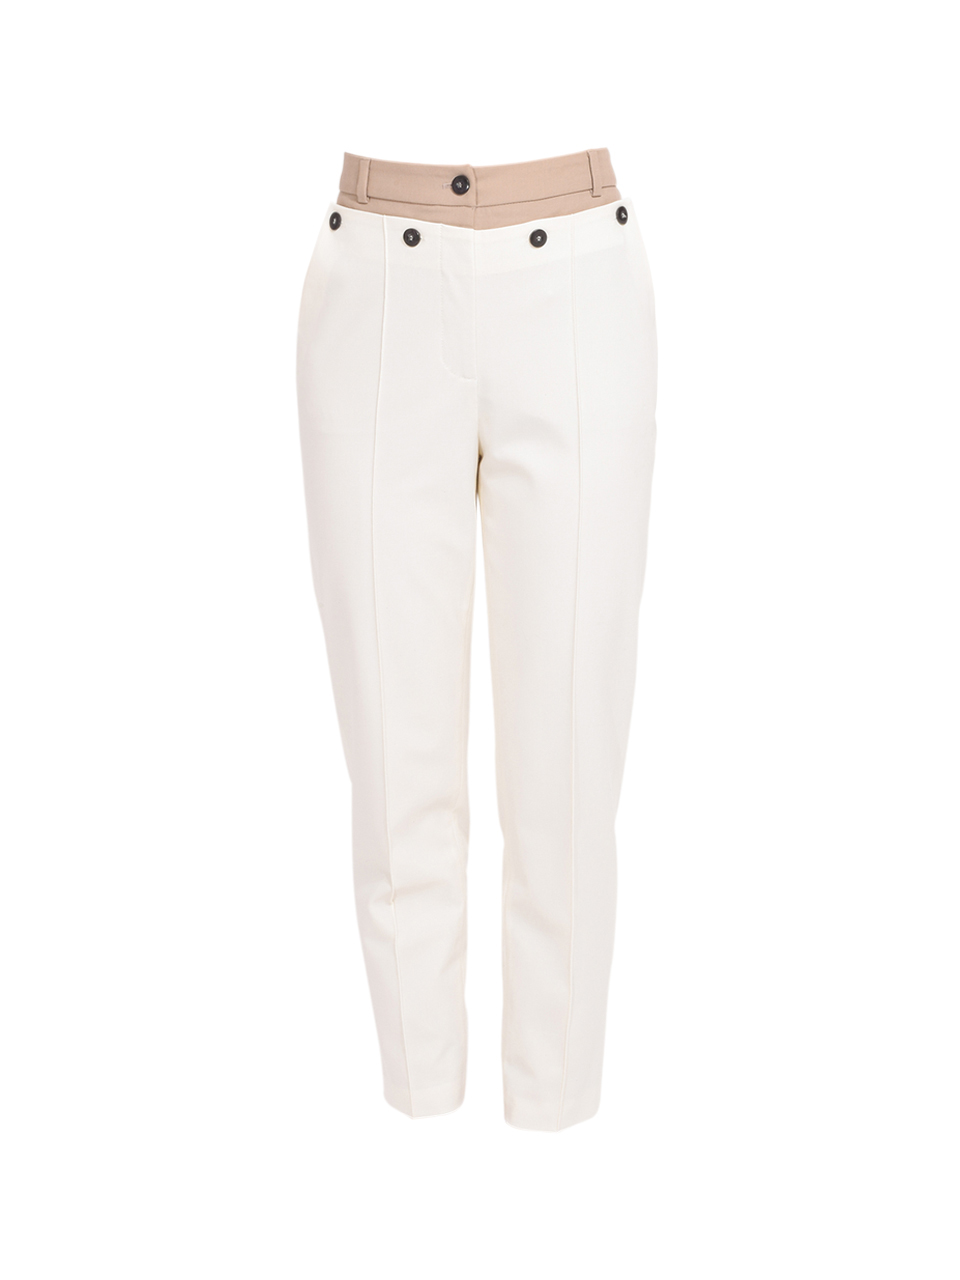 Jonathan Simkhai Spencer Double Front Waist Pant in Papyrus Tan